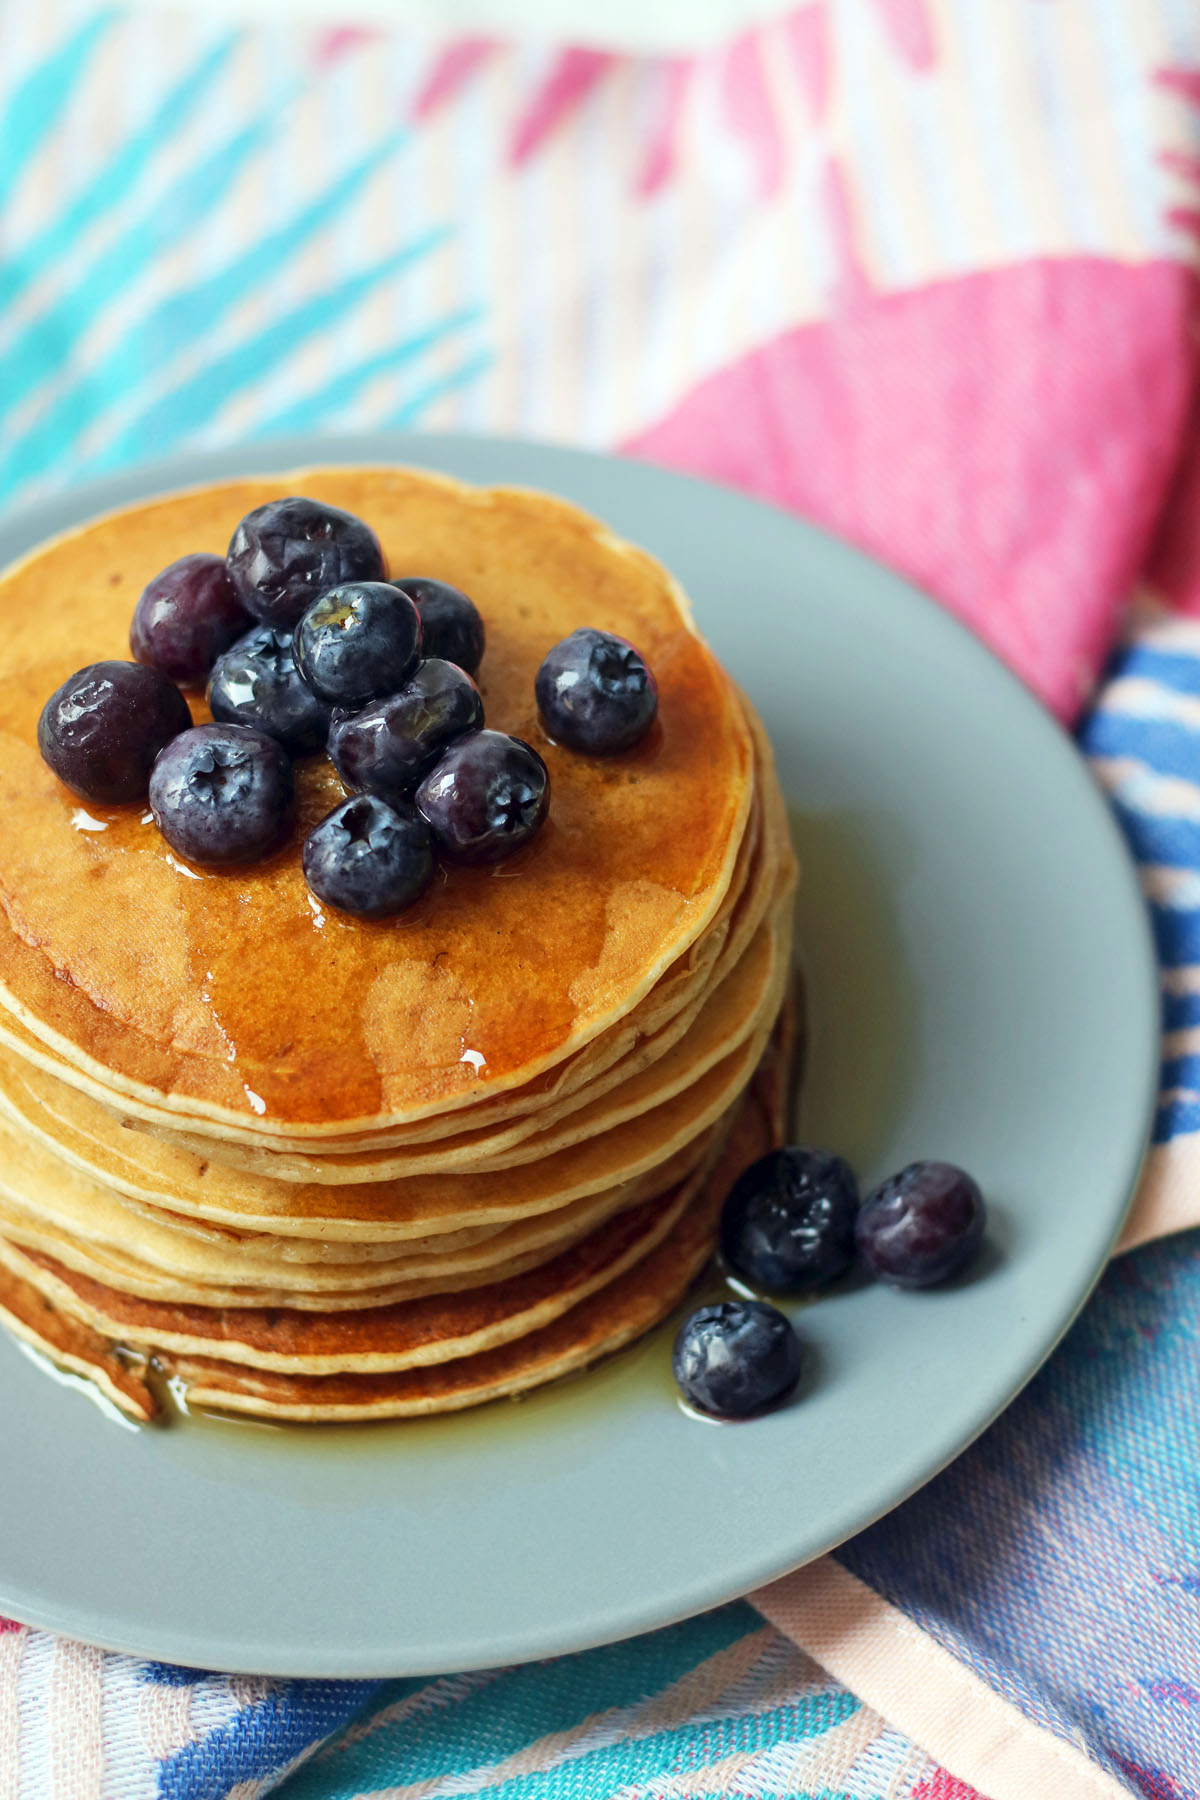 American style vegan pancakes stacked high with maple syrup and blueberries